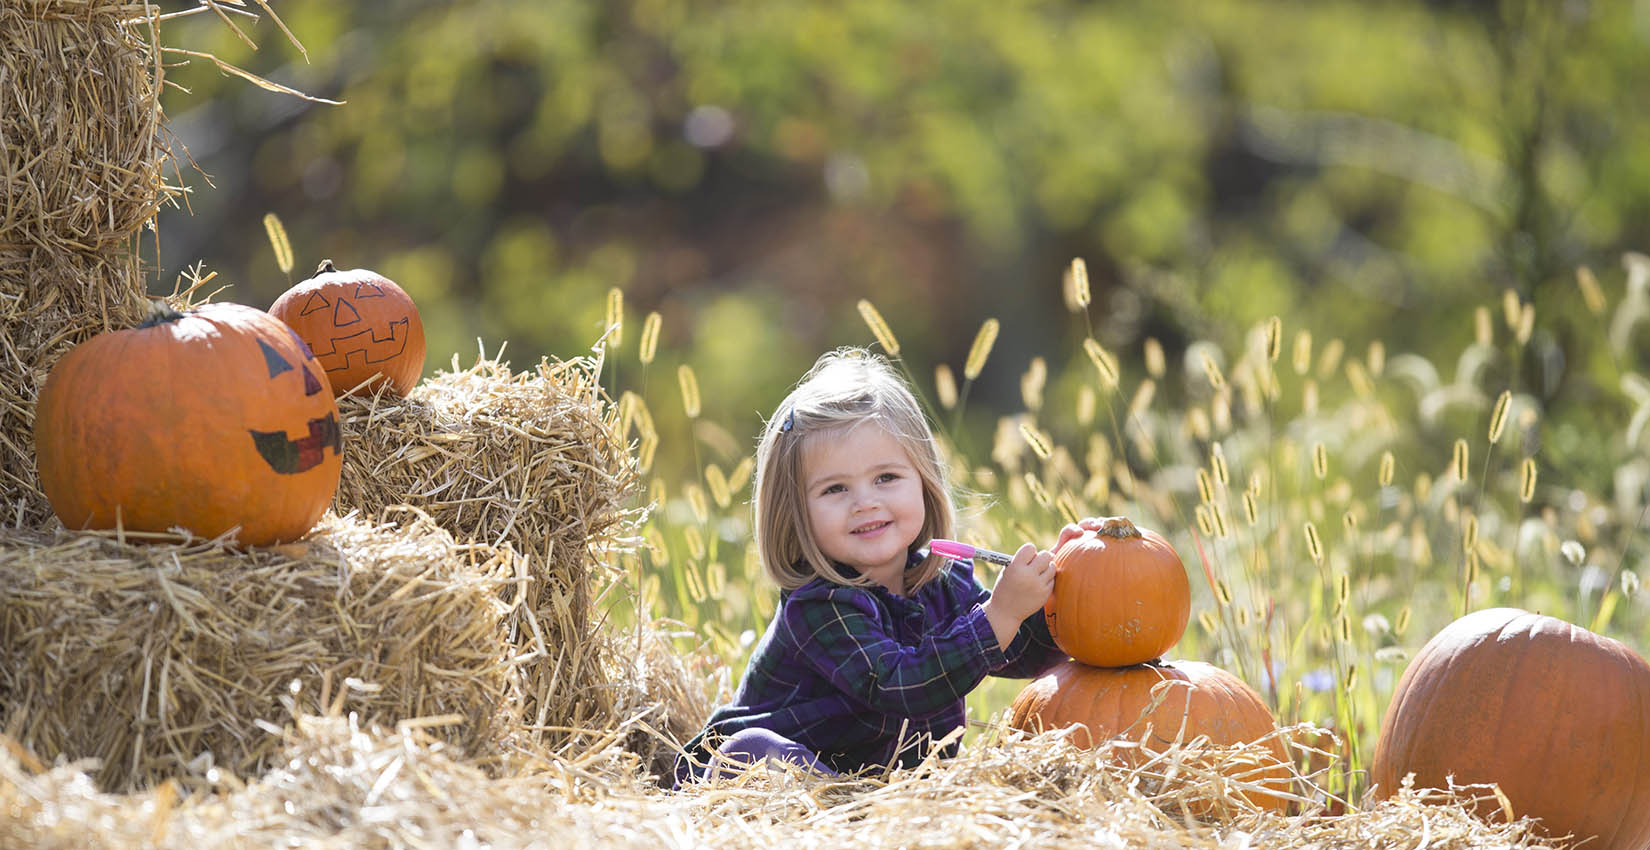 Girl enjoying the pumpkin patch